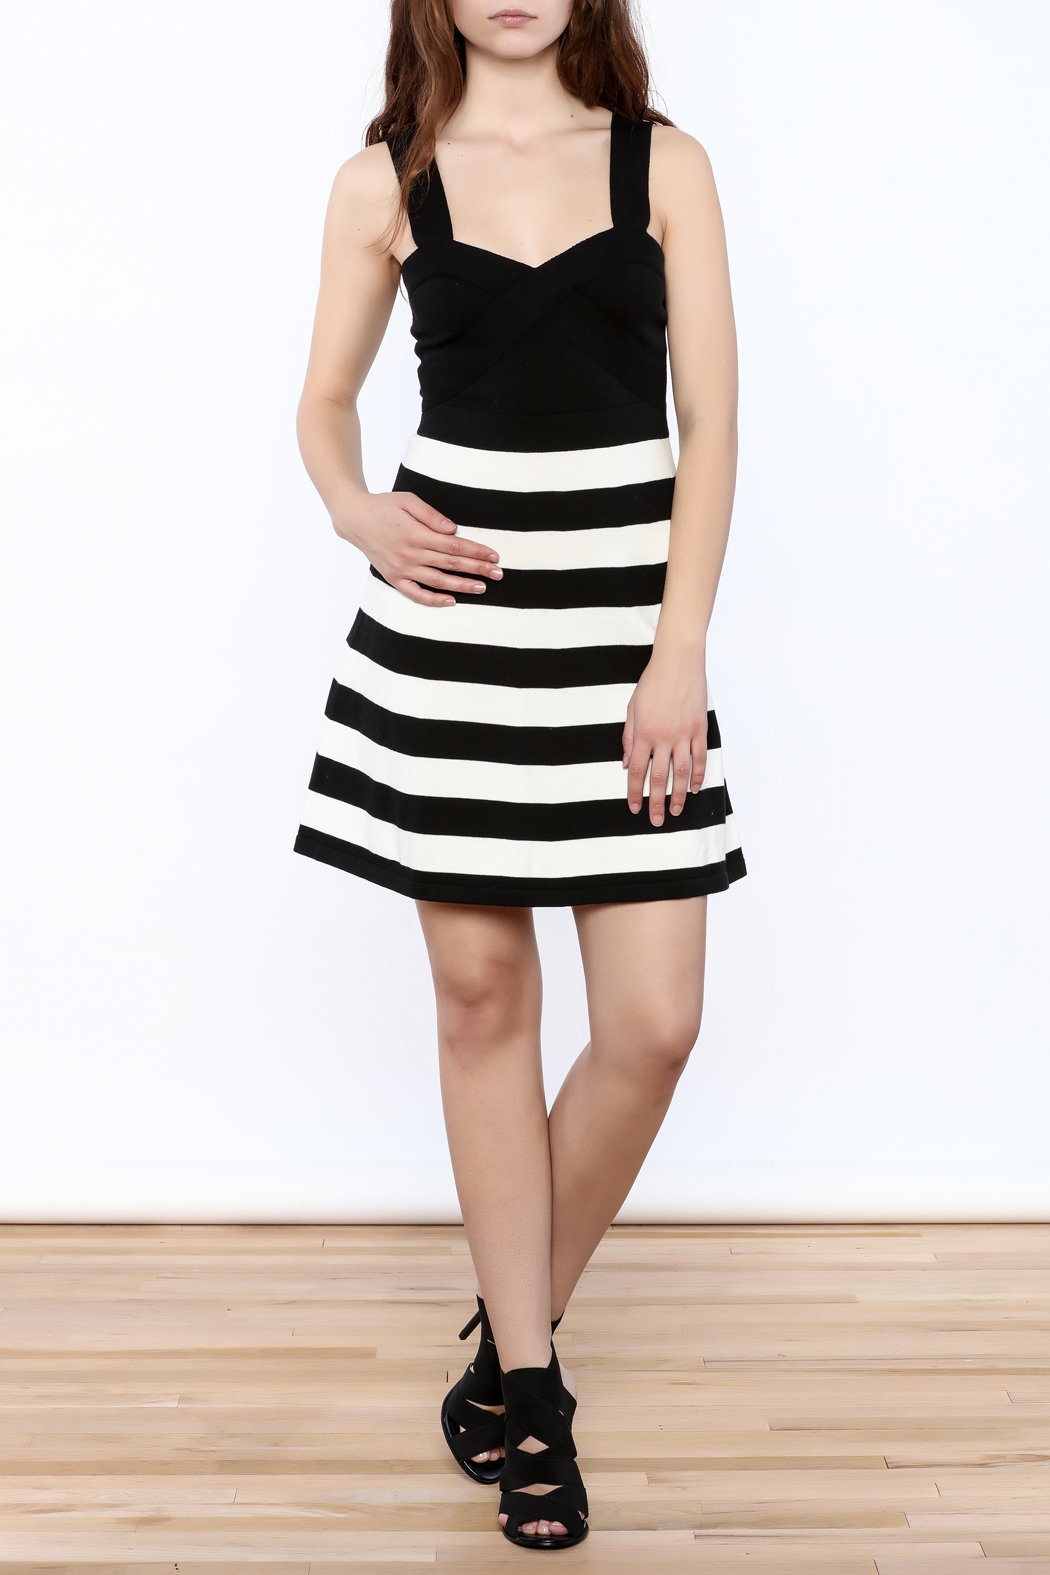 Trina by Trina Turk Side Striped Dress - Front Full Image